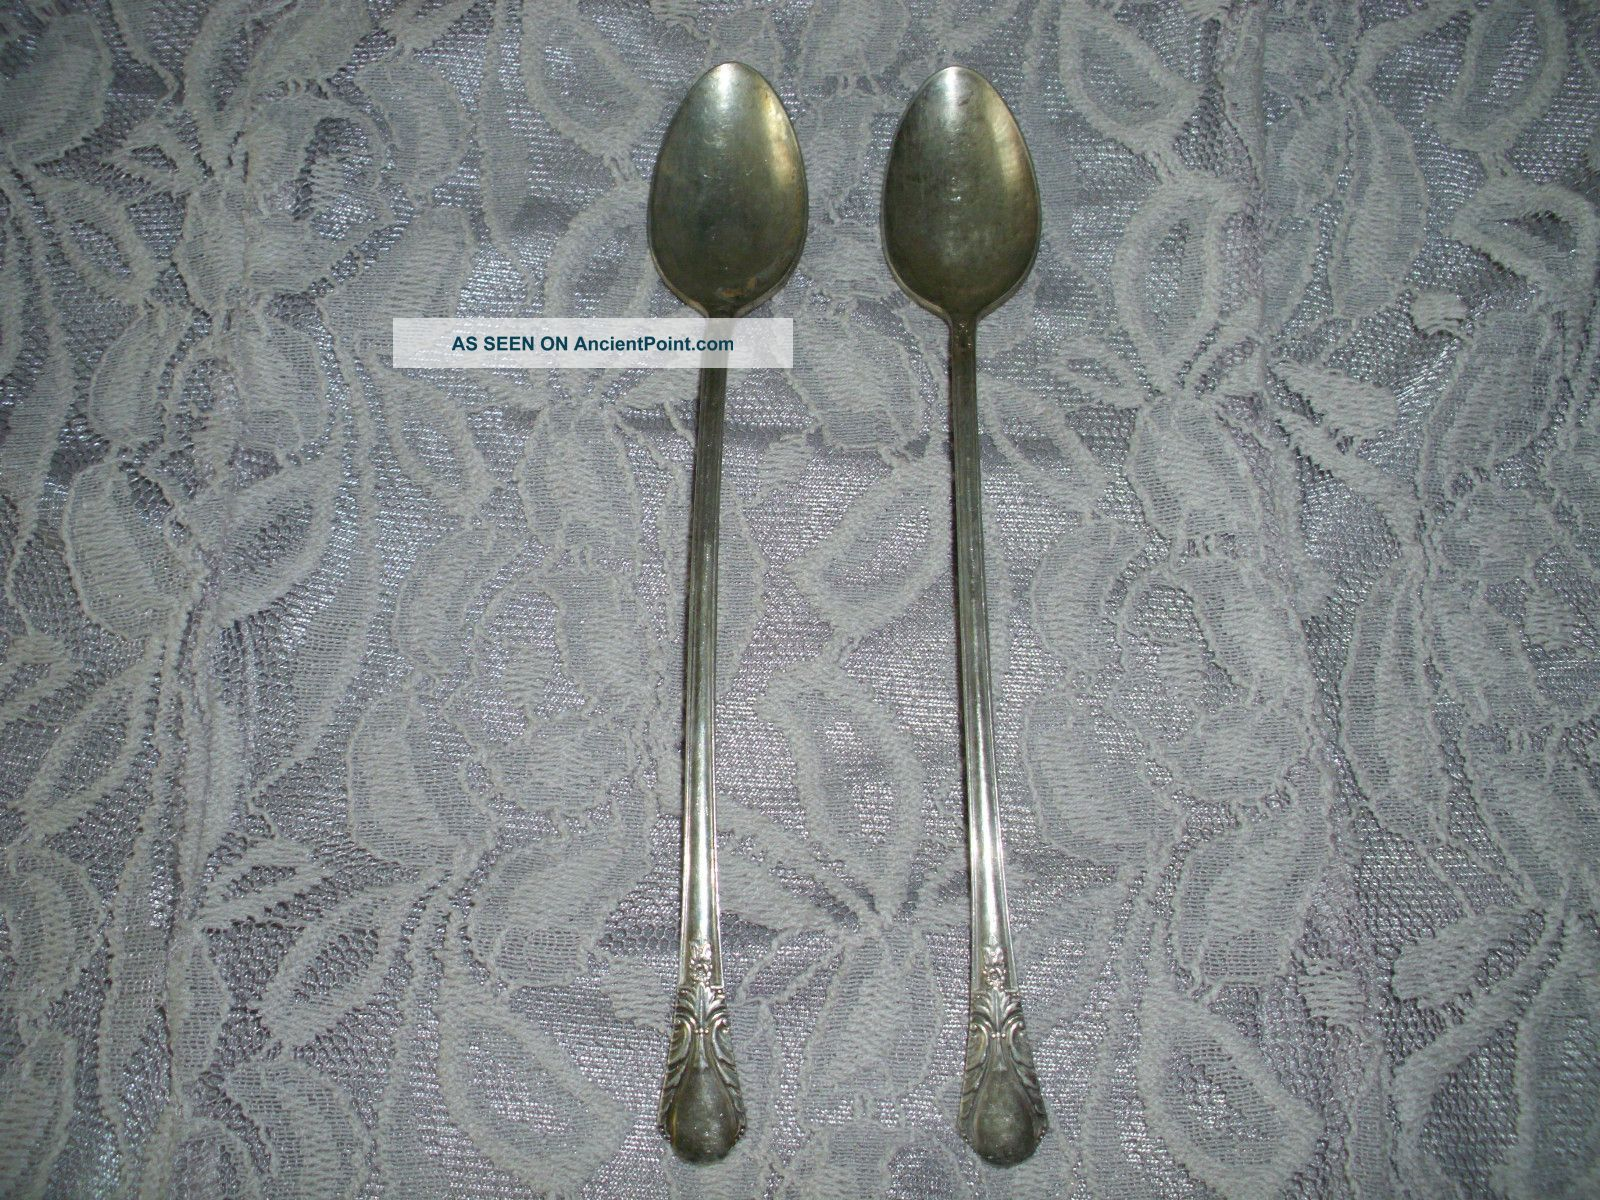 2 Wm Rogers Mfg.  Co Silverplate Long Handled Ice Tea Spoons Oneida/Wm. A. Rogers photo